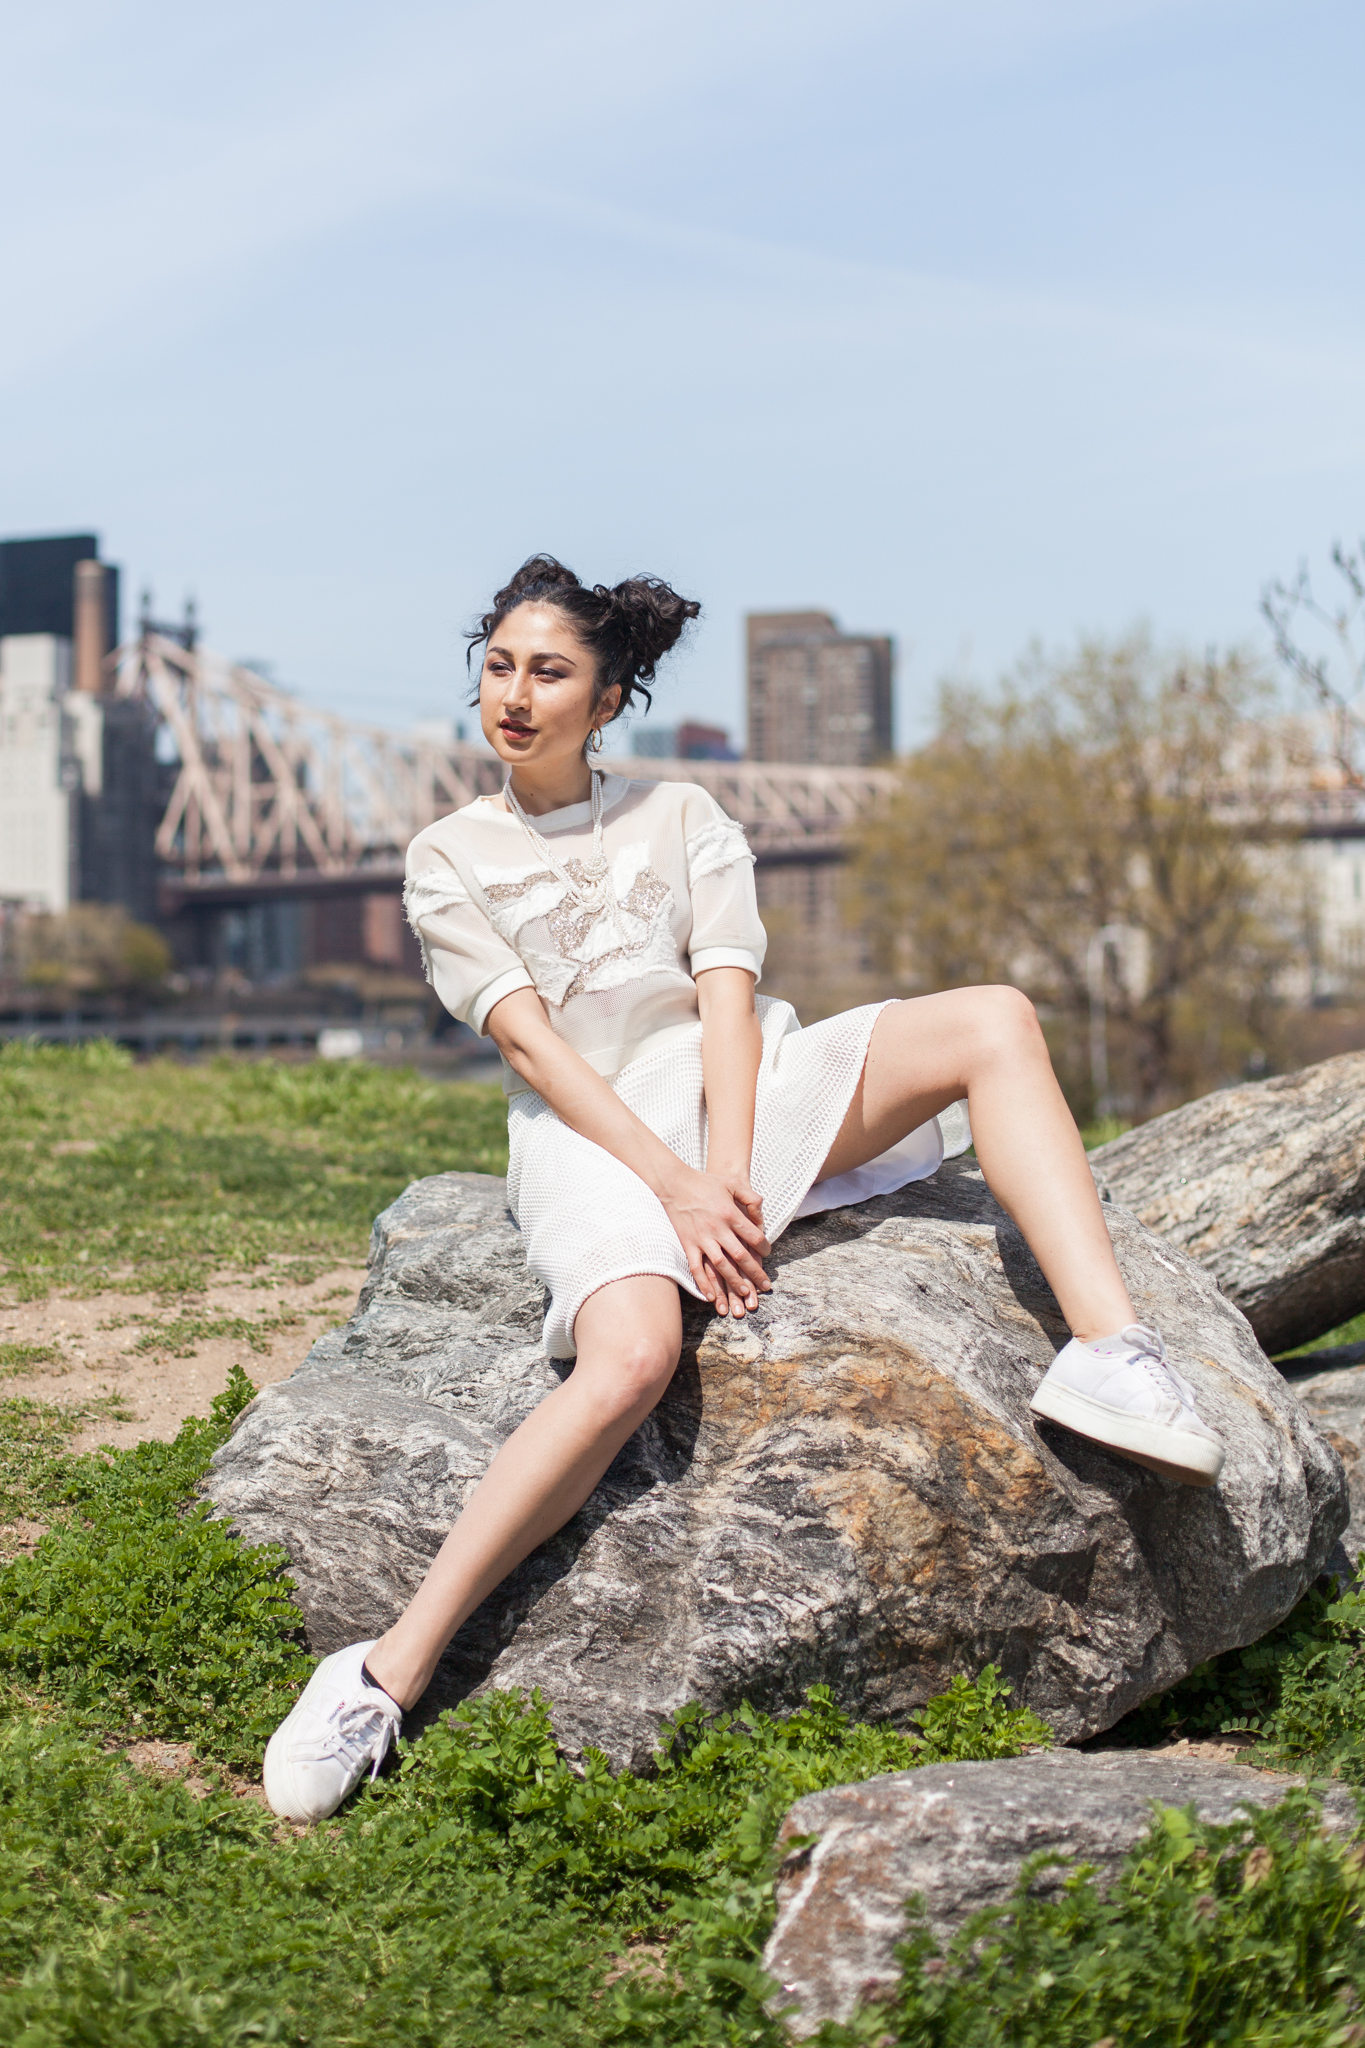 whomstudio_yurie-collins_roosevelt-island-nyc-0201_web.jpg